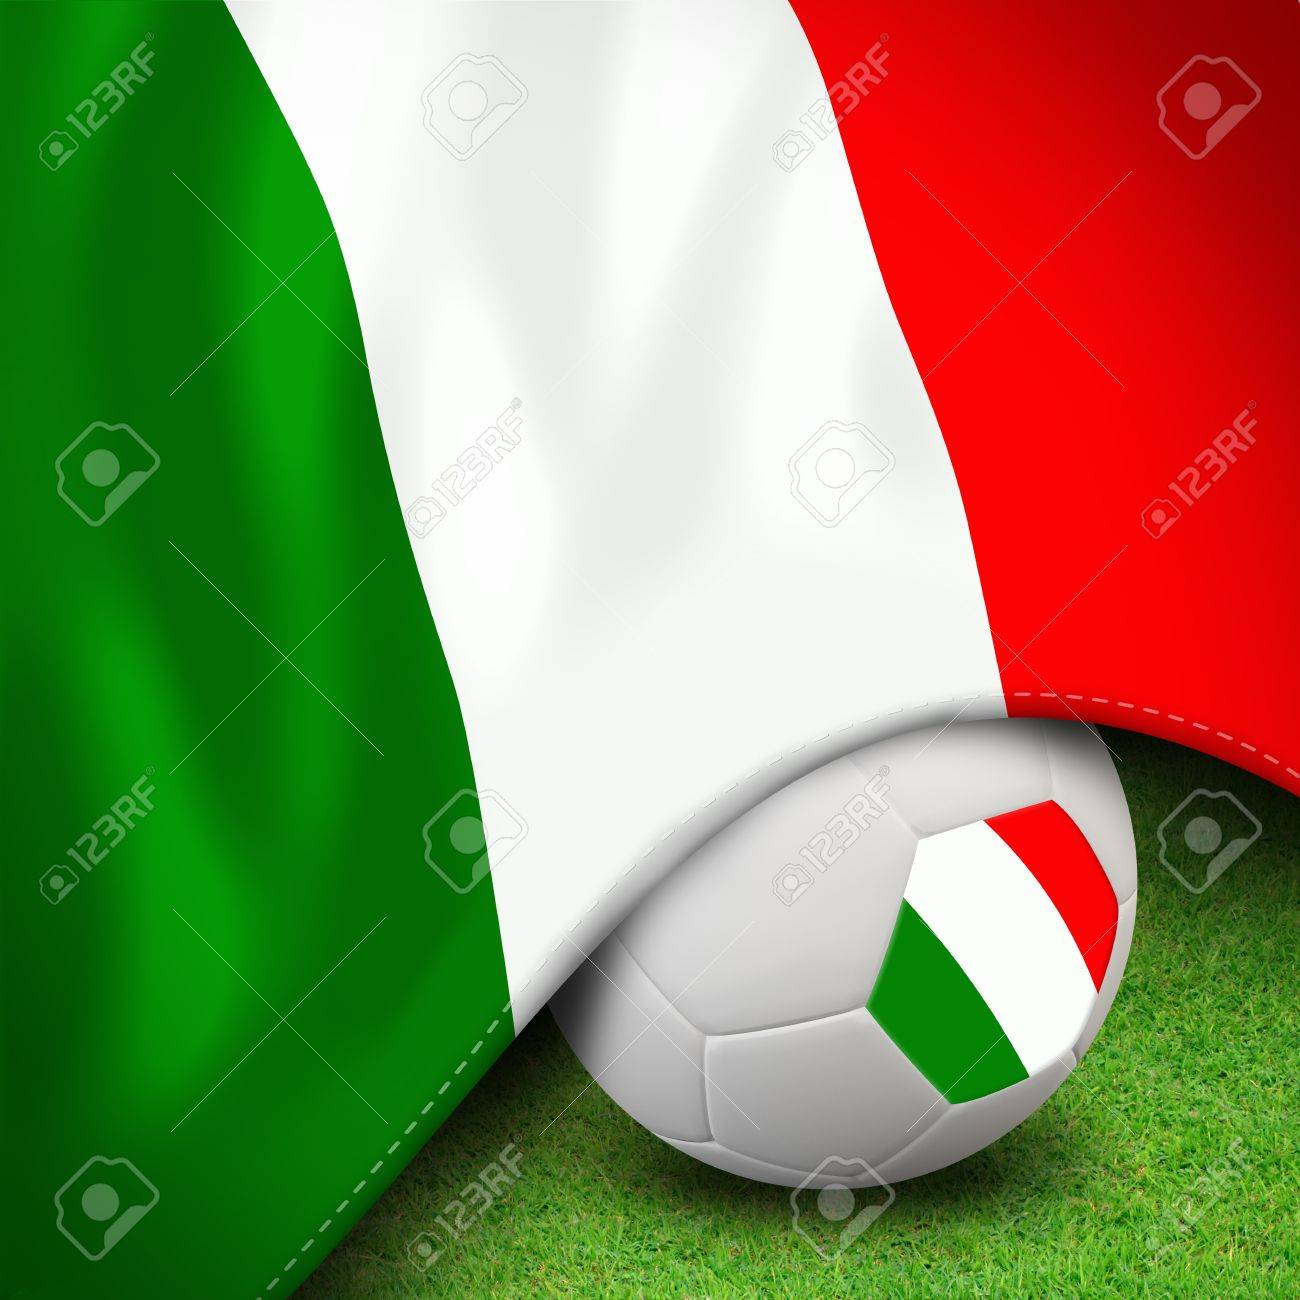 Soccer ball and flag euro italy for euro 2012 group c Stock Photo - 12822450